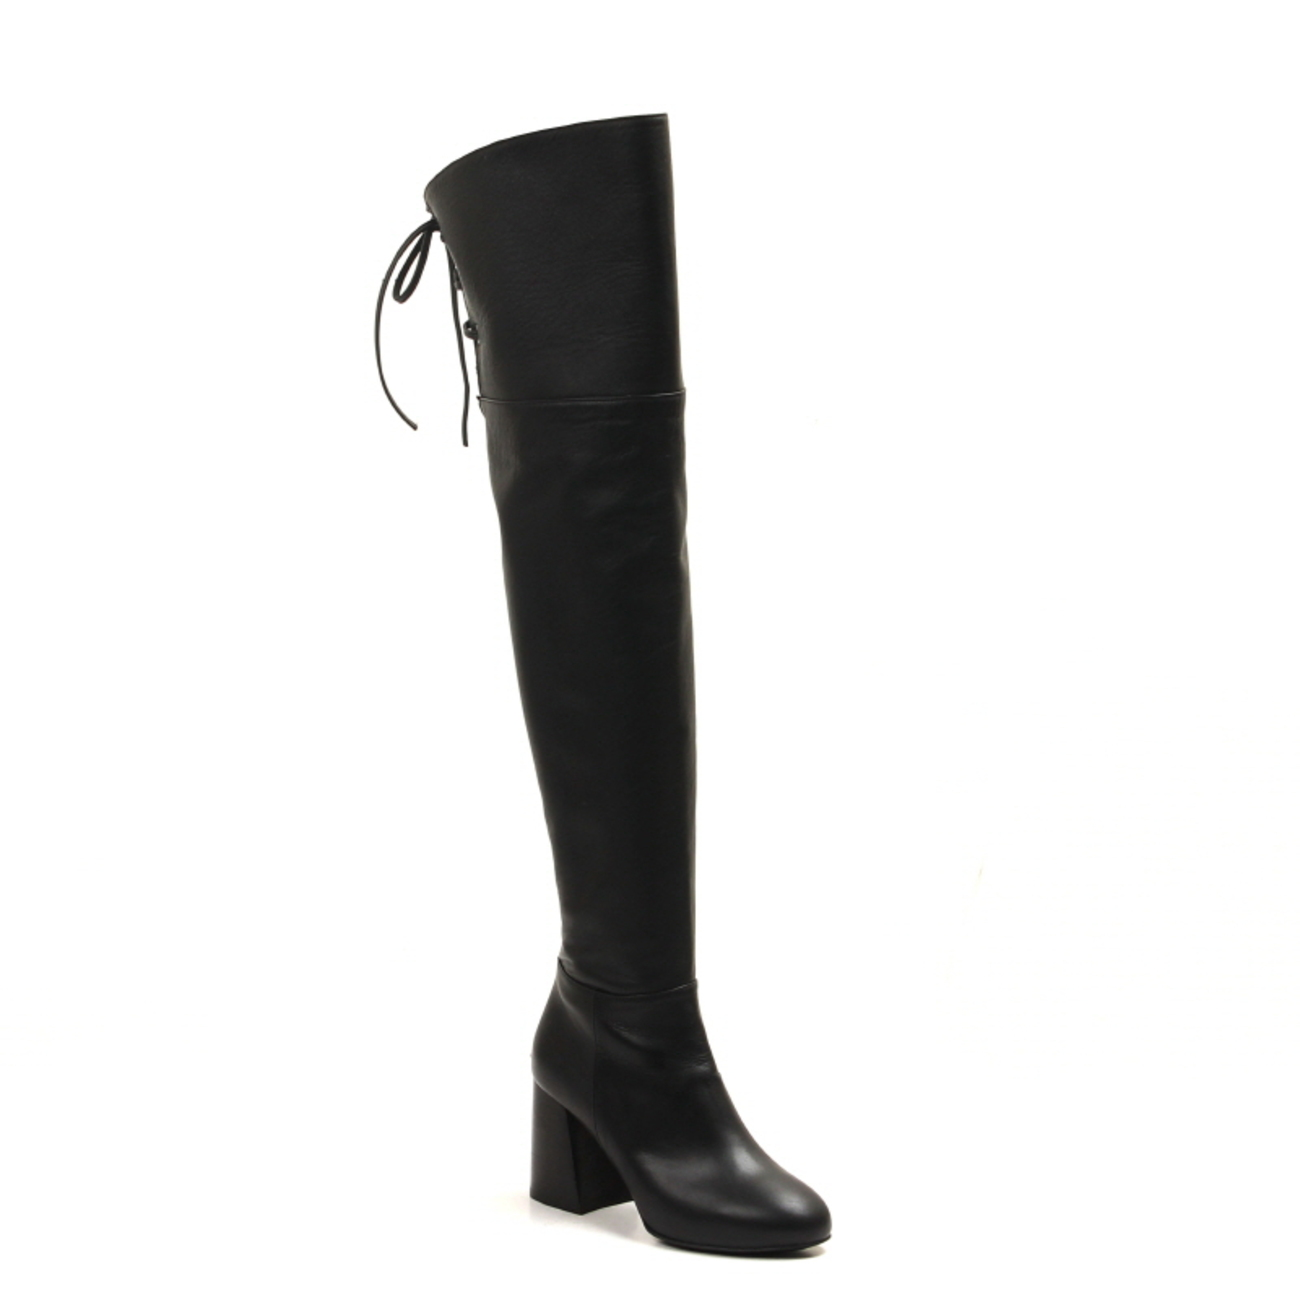 REKKEN Thigh high boots_EVERS RK359